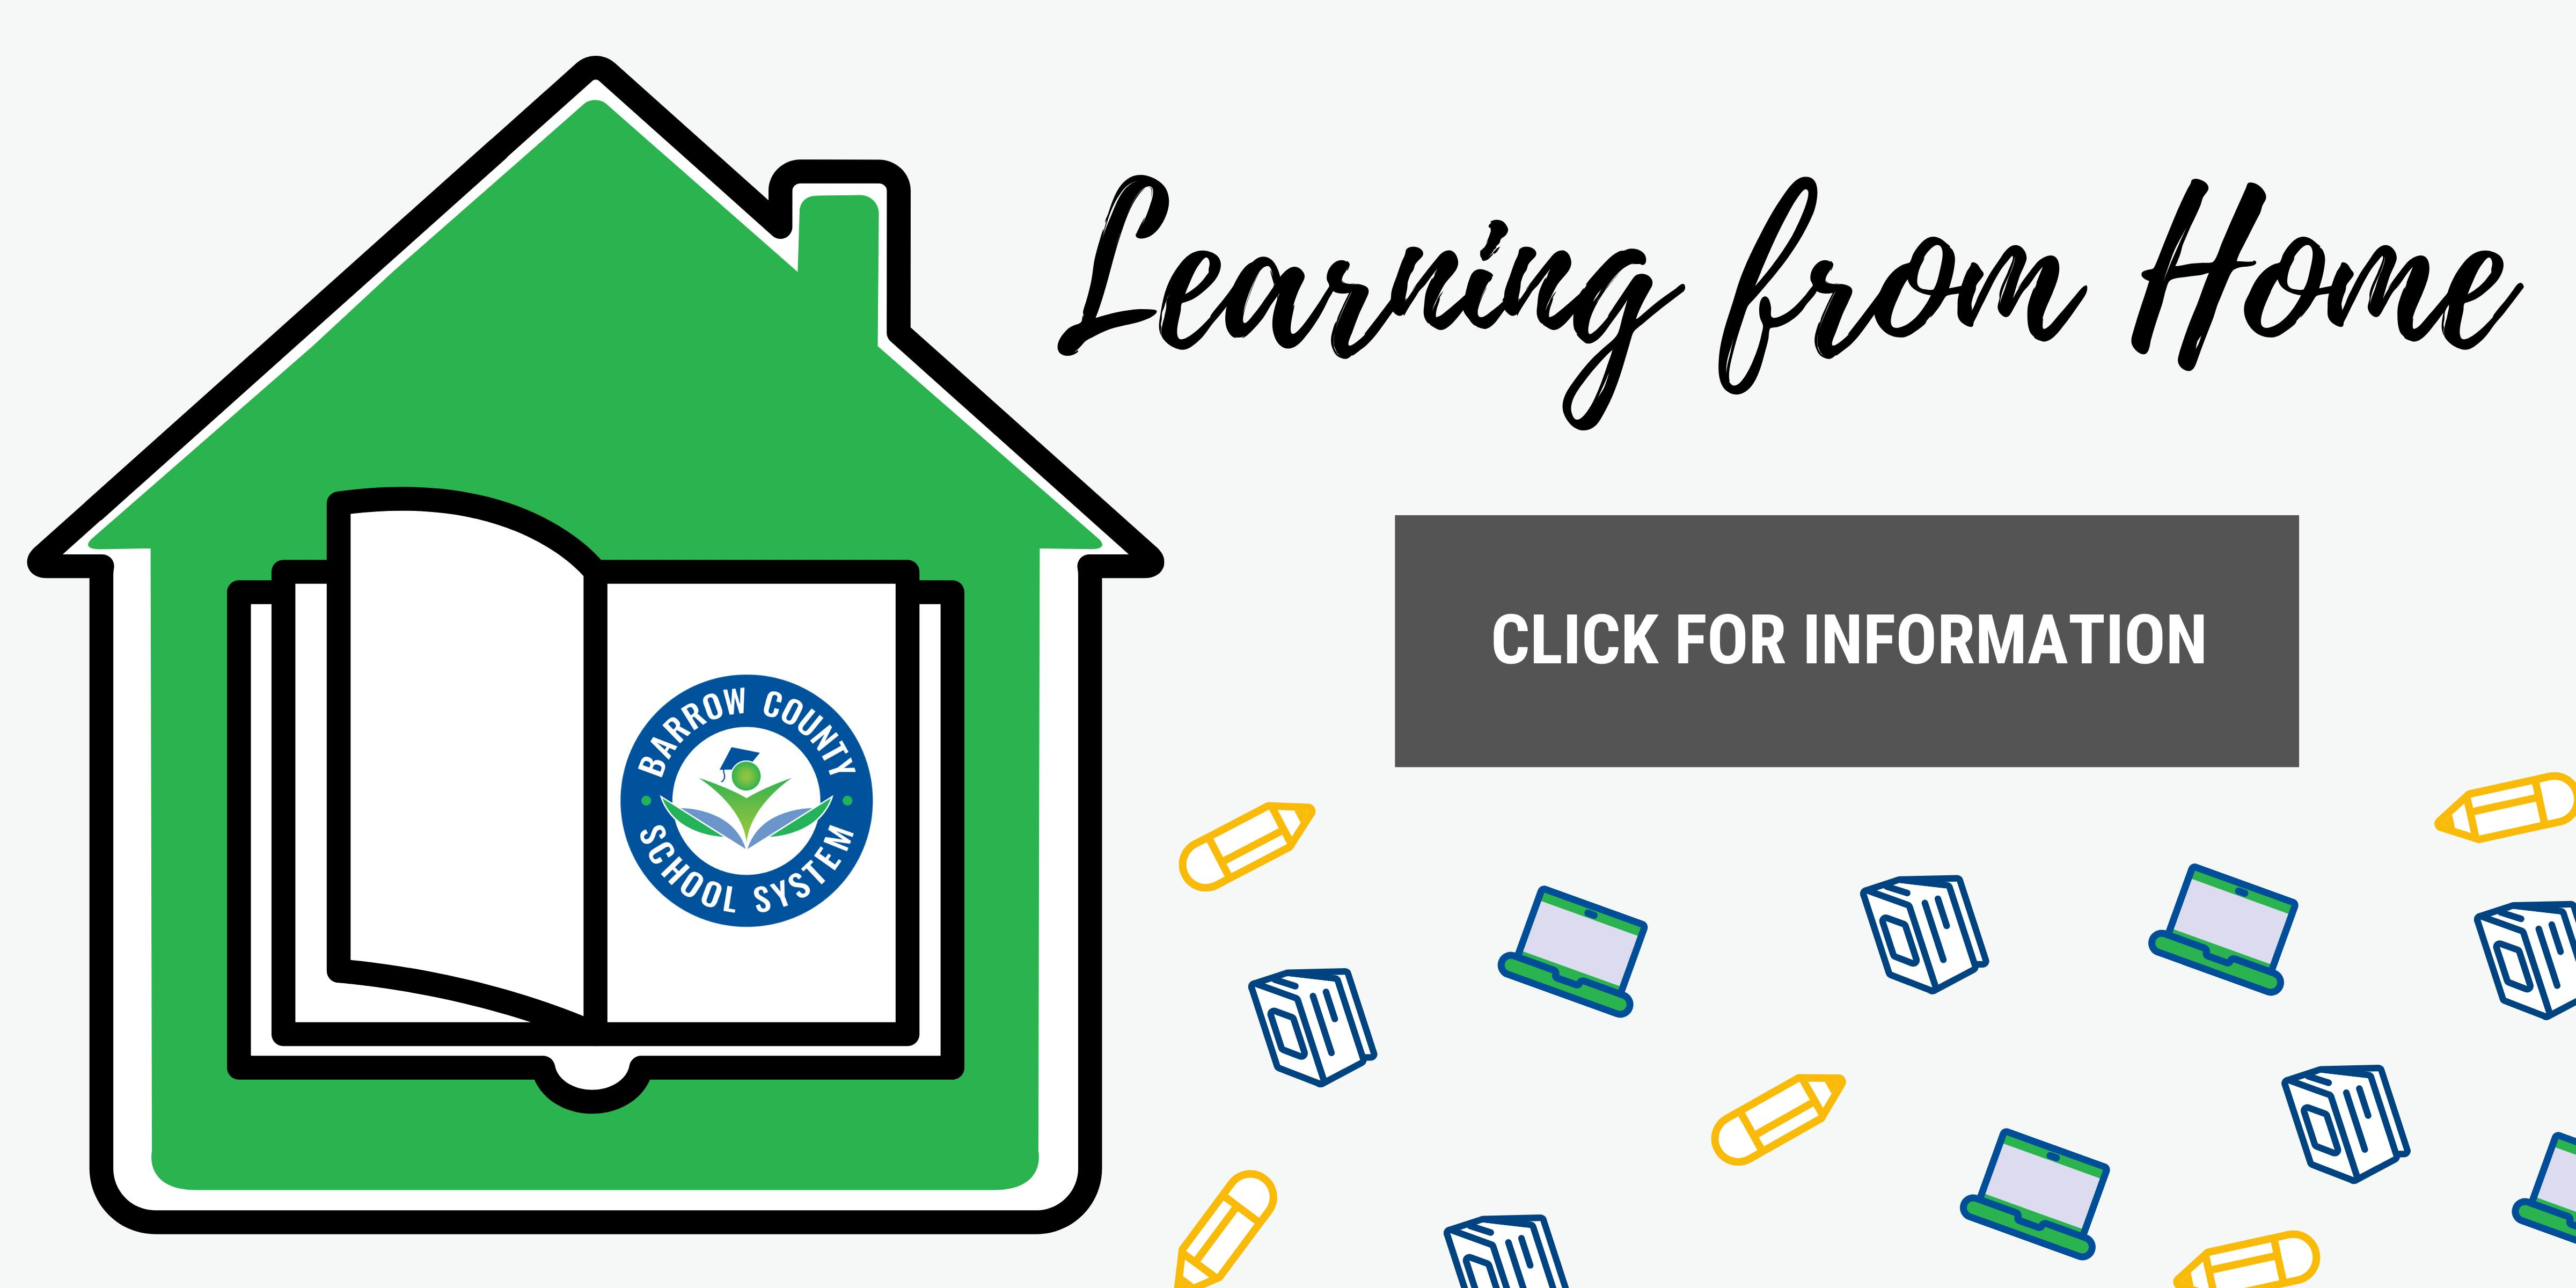 Learning from home activities during the school closure